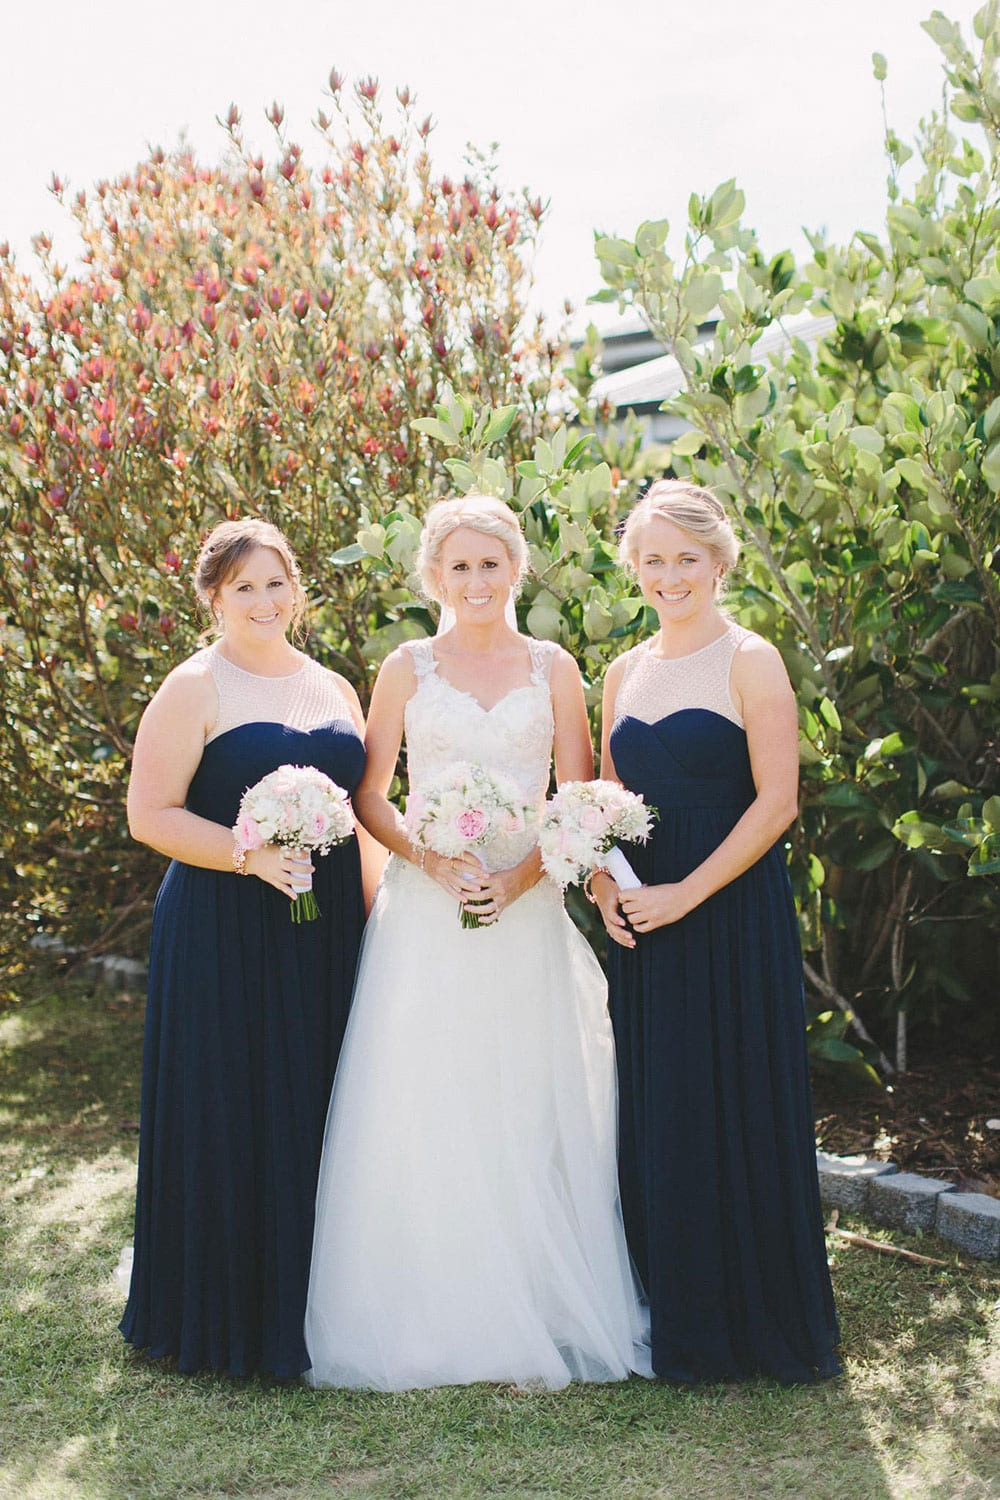 Real Weddings | Vinka Design | Real Brides Wearing Vinka Gowns | Louise and Ryan - Louise with bridesmaids